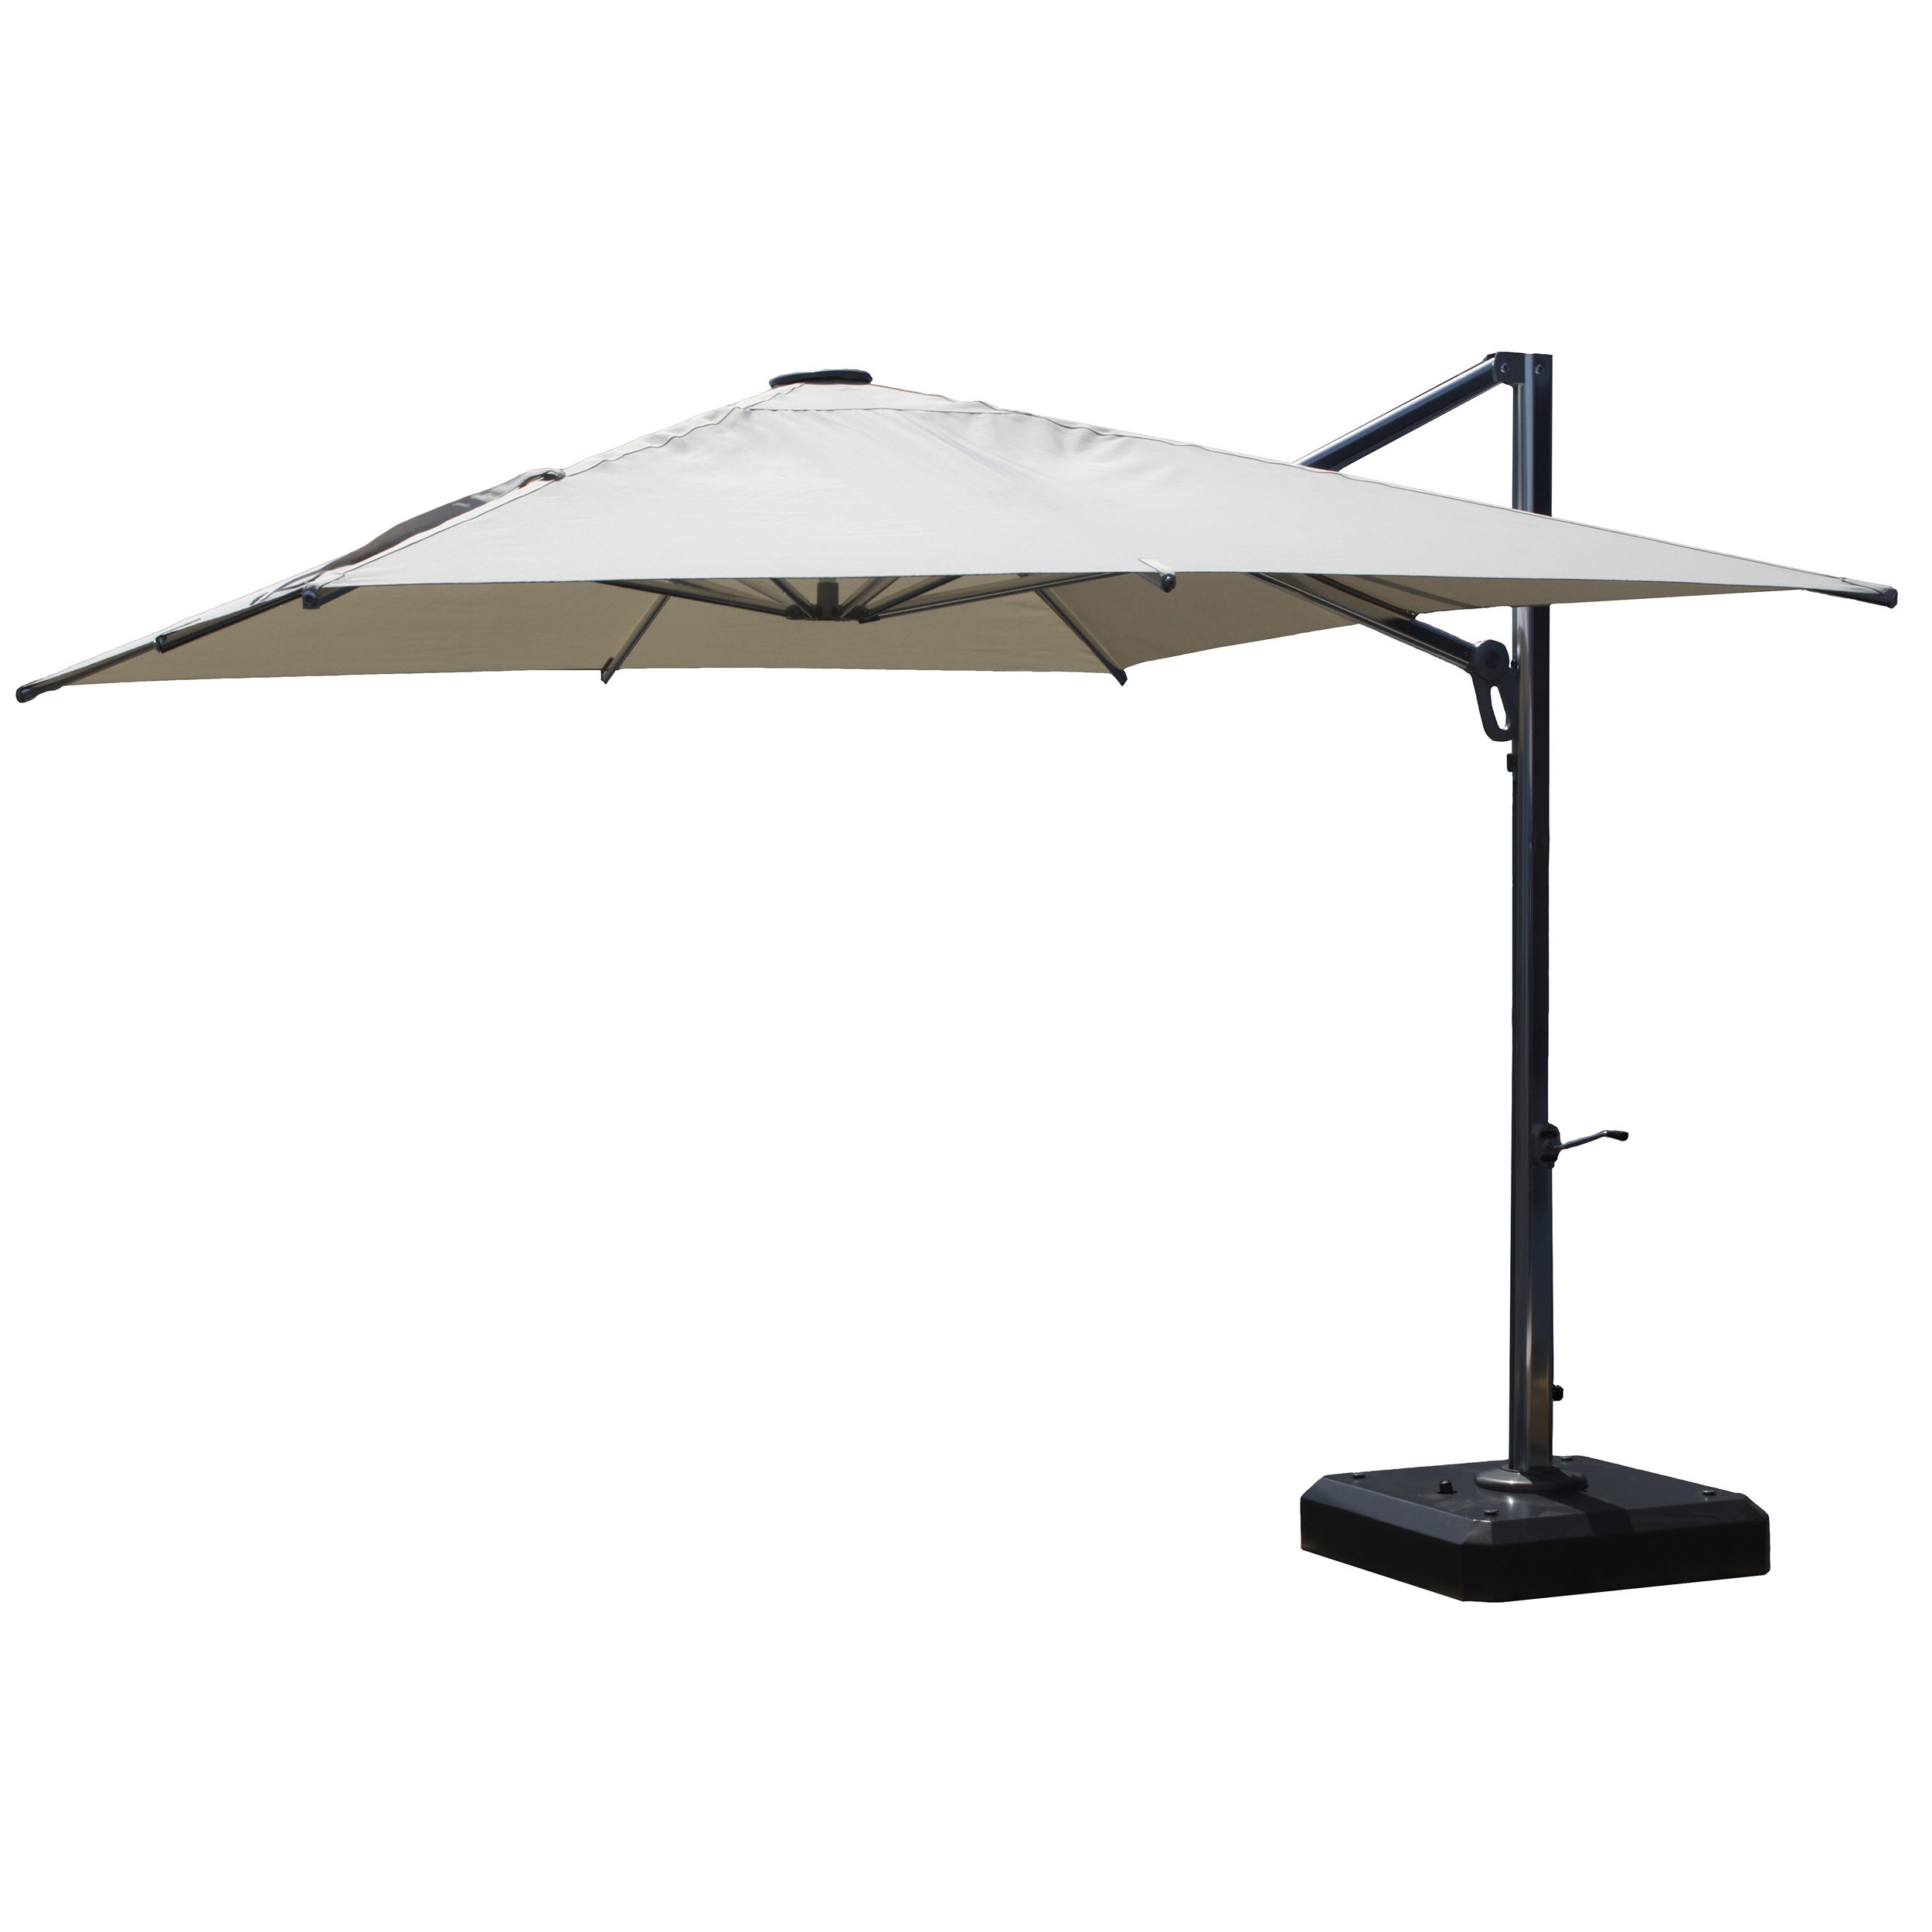 10' Square Cantilever Umbrella With Widely Used Emely Cantilever Umbrellas (View 3 of 20)